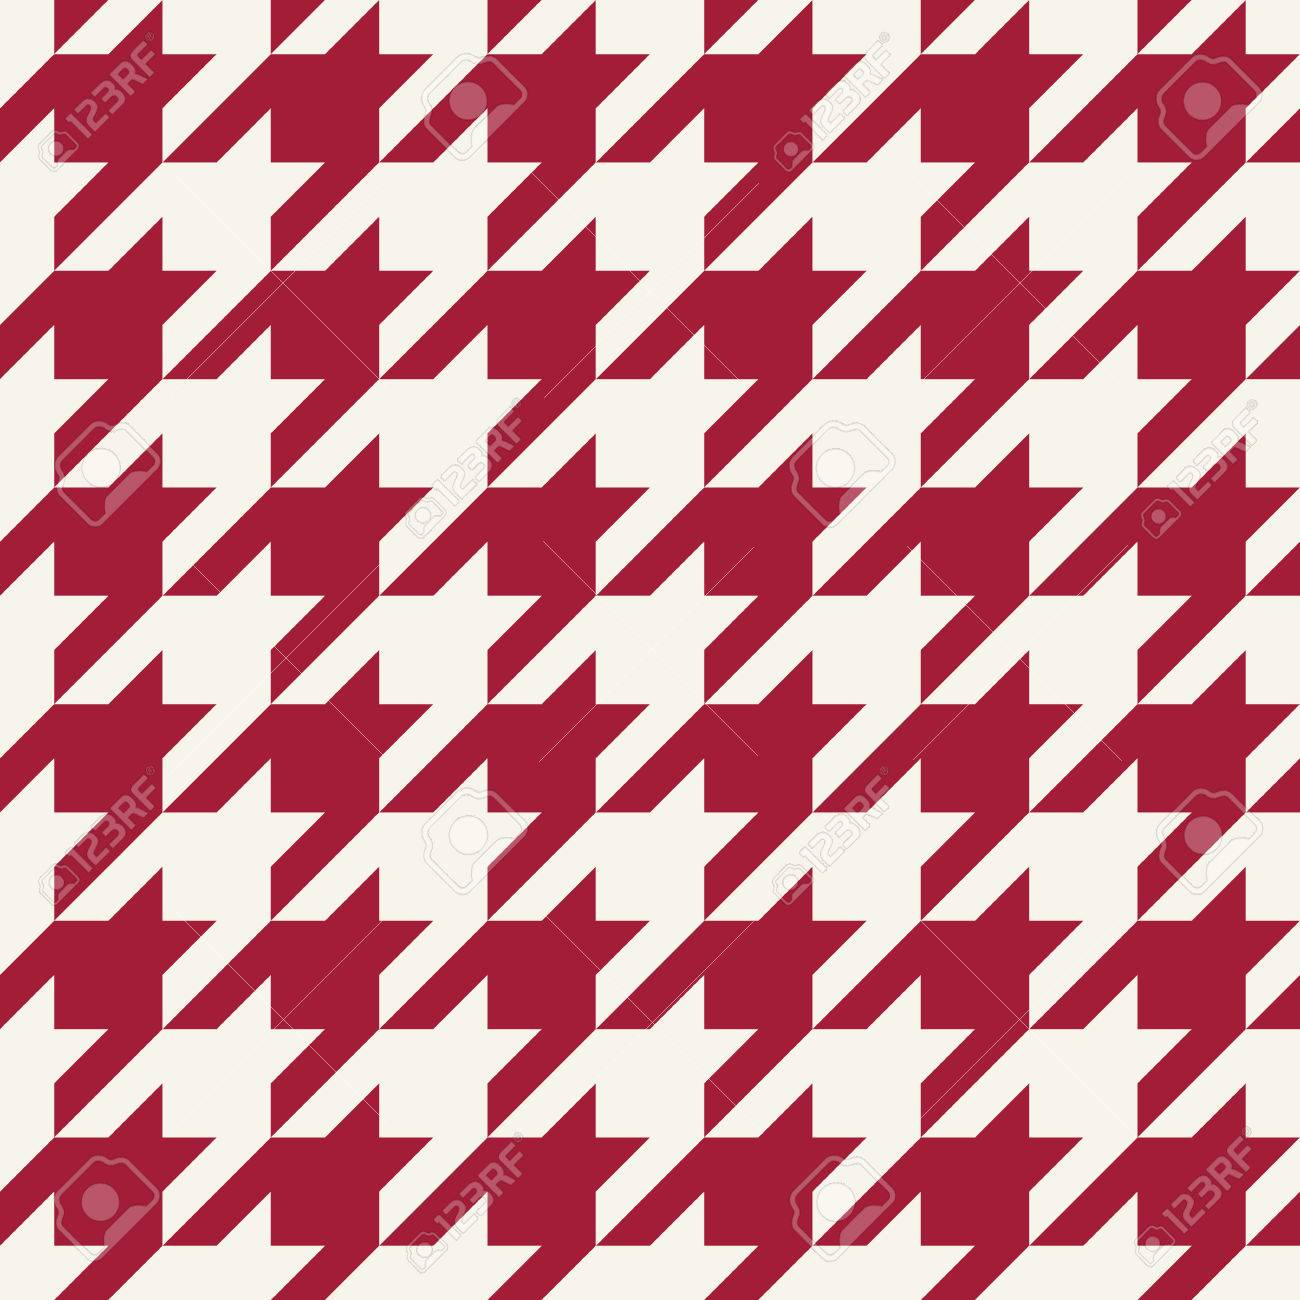 houndstooth checkered fashion trendy textile geometric pattern - 74826705